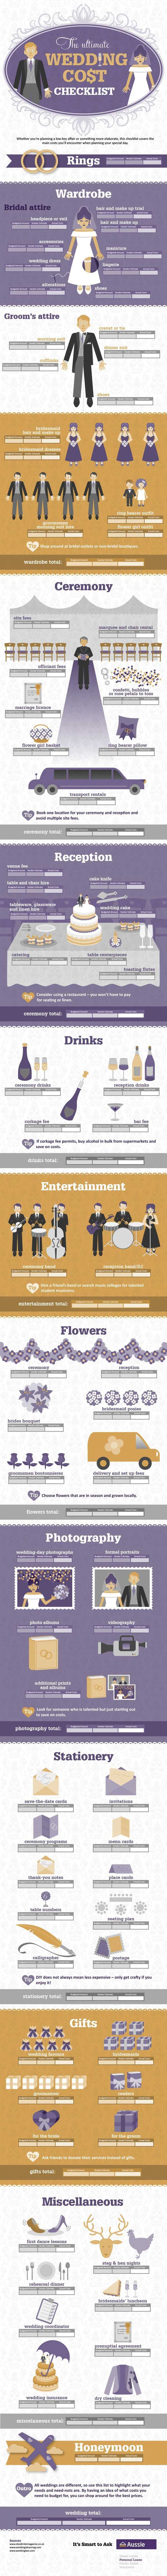 wedding budget checklist 2013 #infography